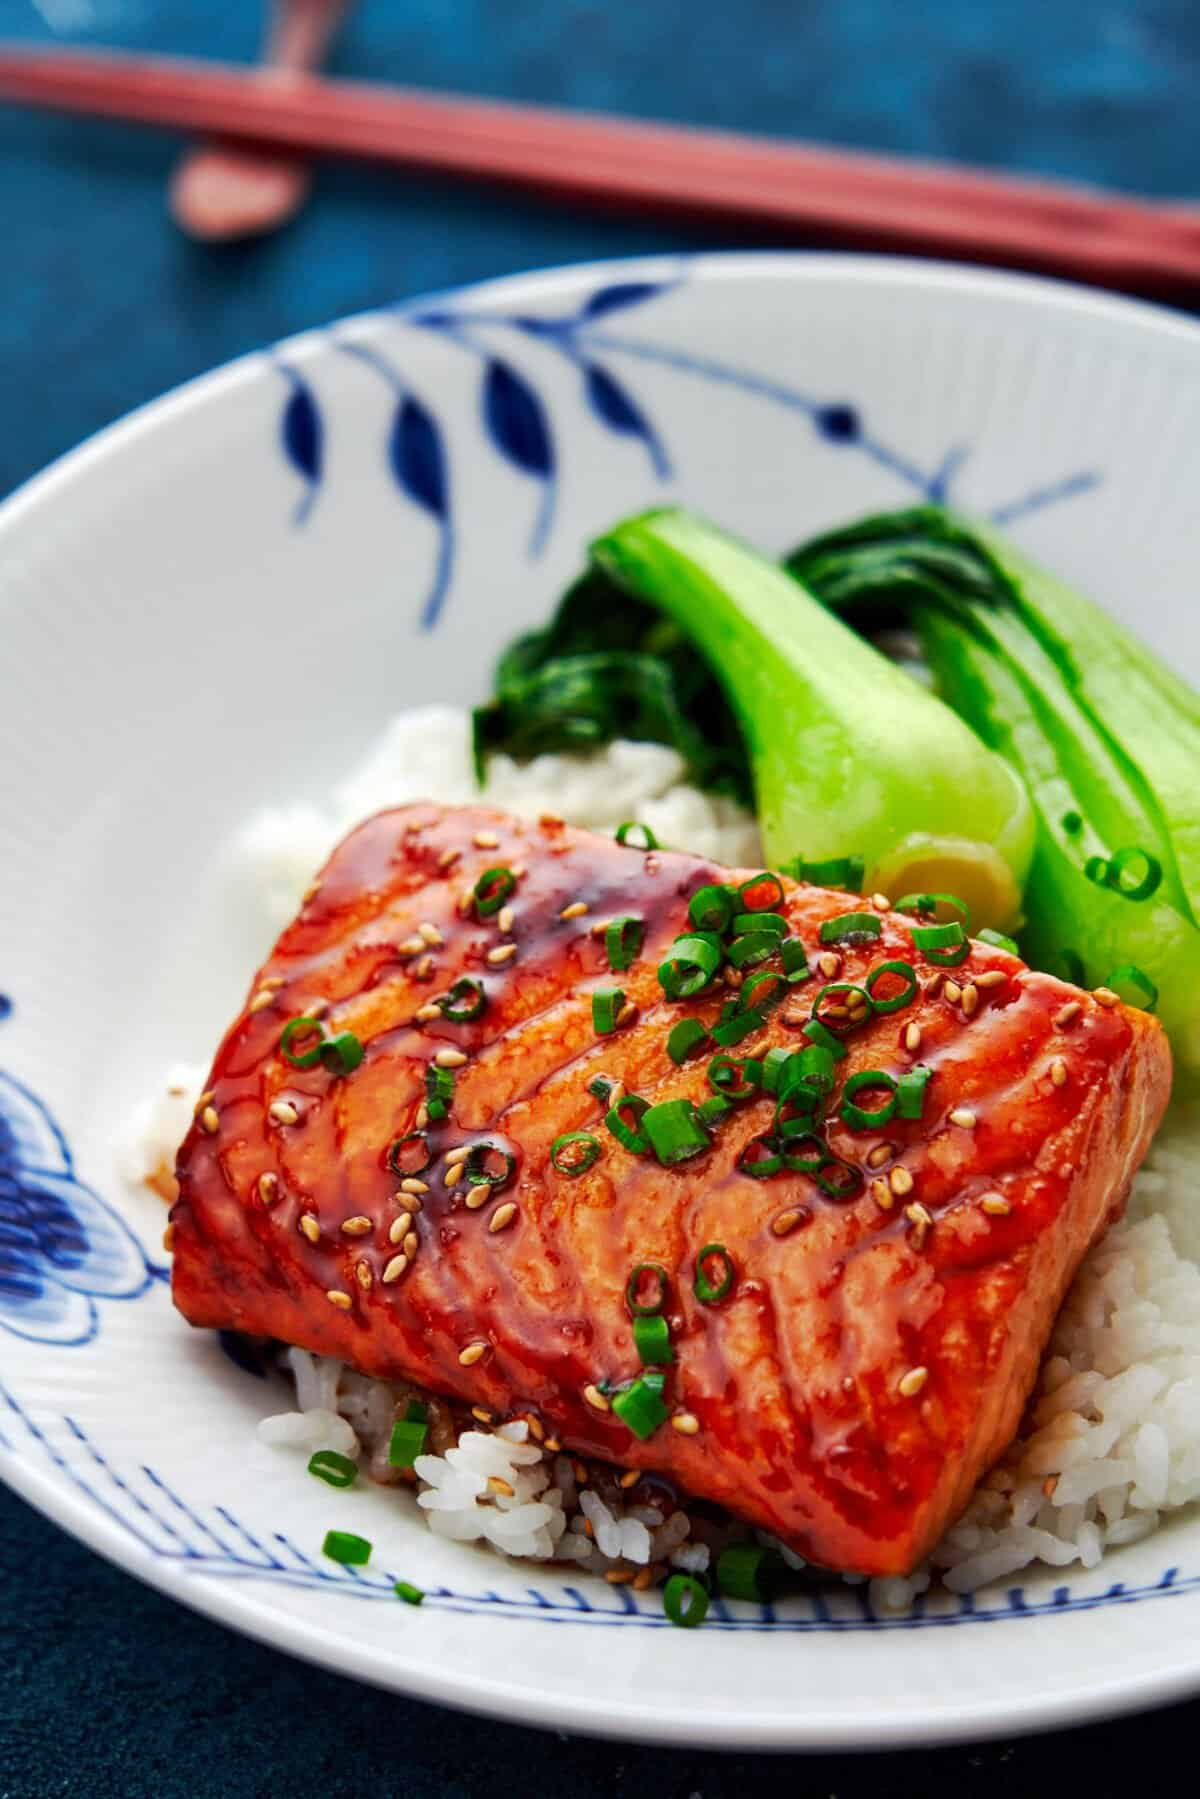 This authentic Salmon Teriyaki recipe comes together from just a handful of pantry staples in minutes.